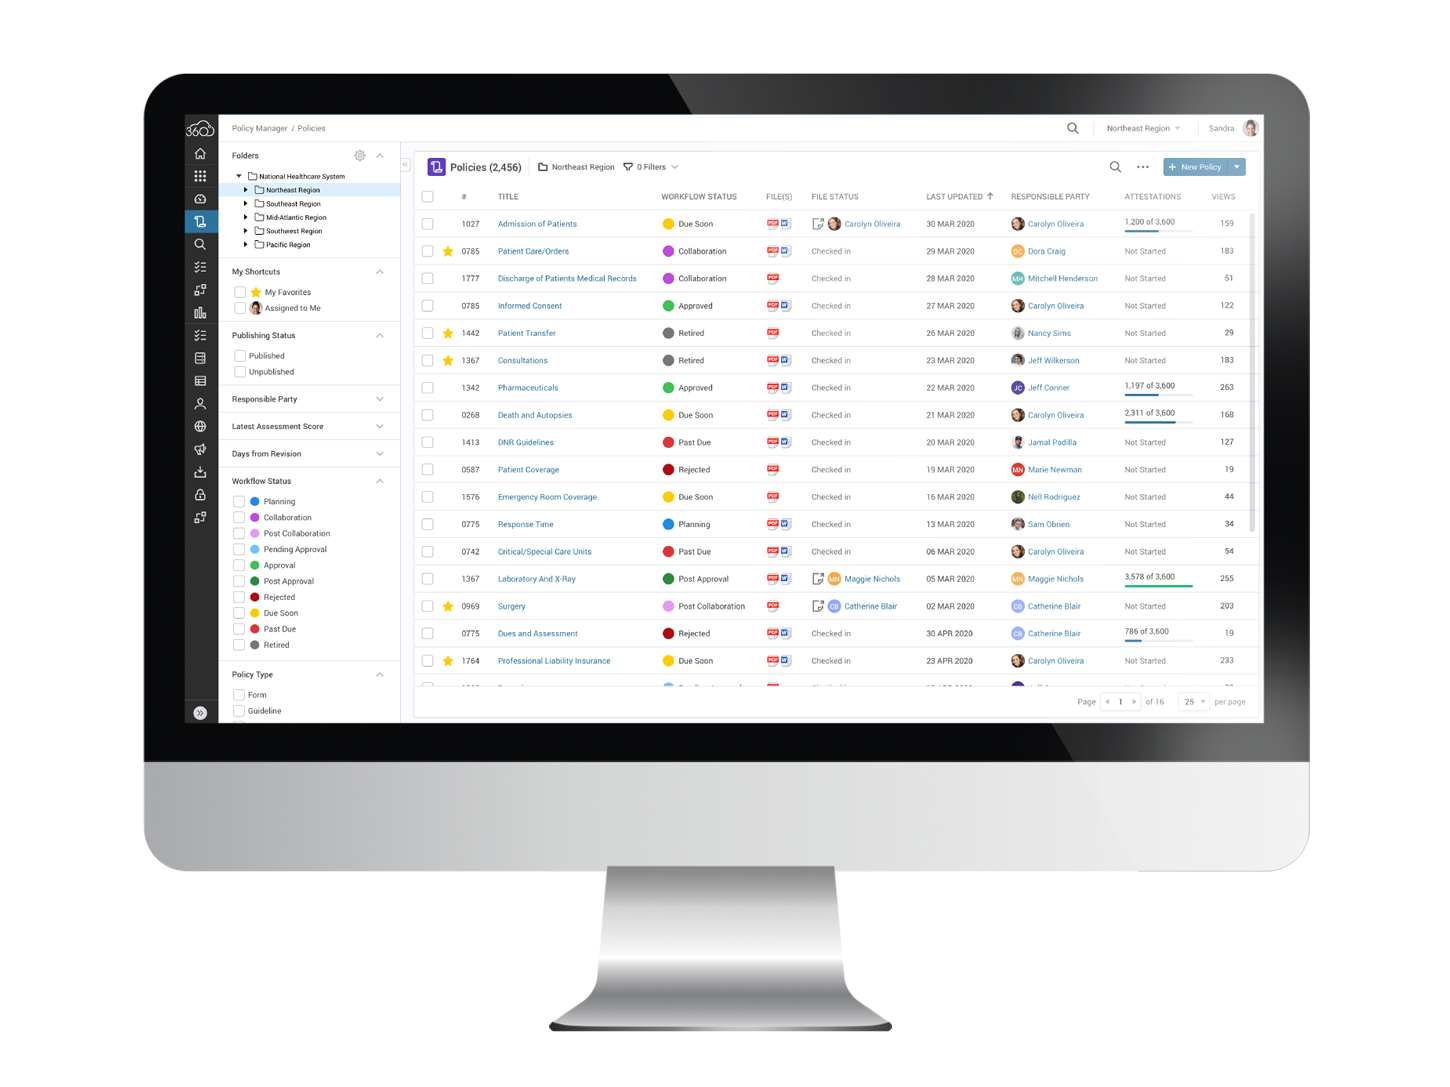 With SAI360 you'll have an up-to-the-minute view of policy reviews, approvals and attestations.